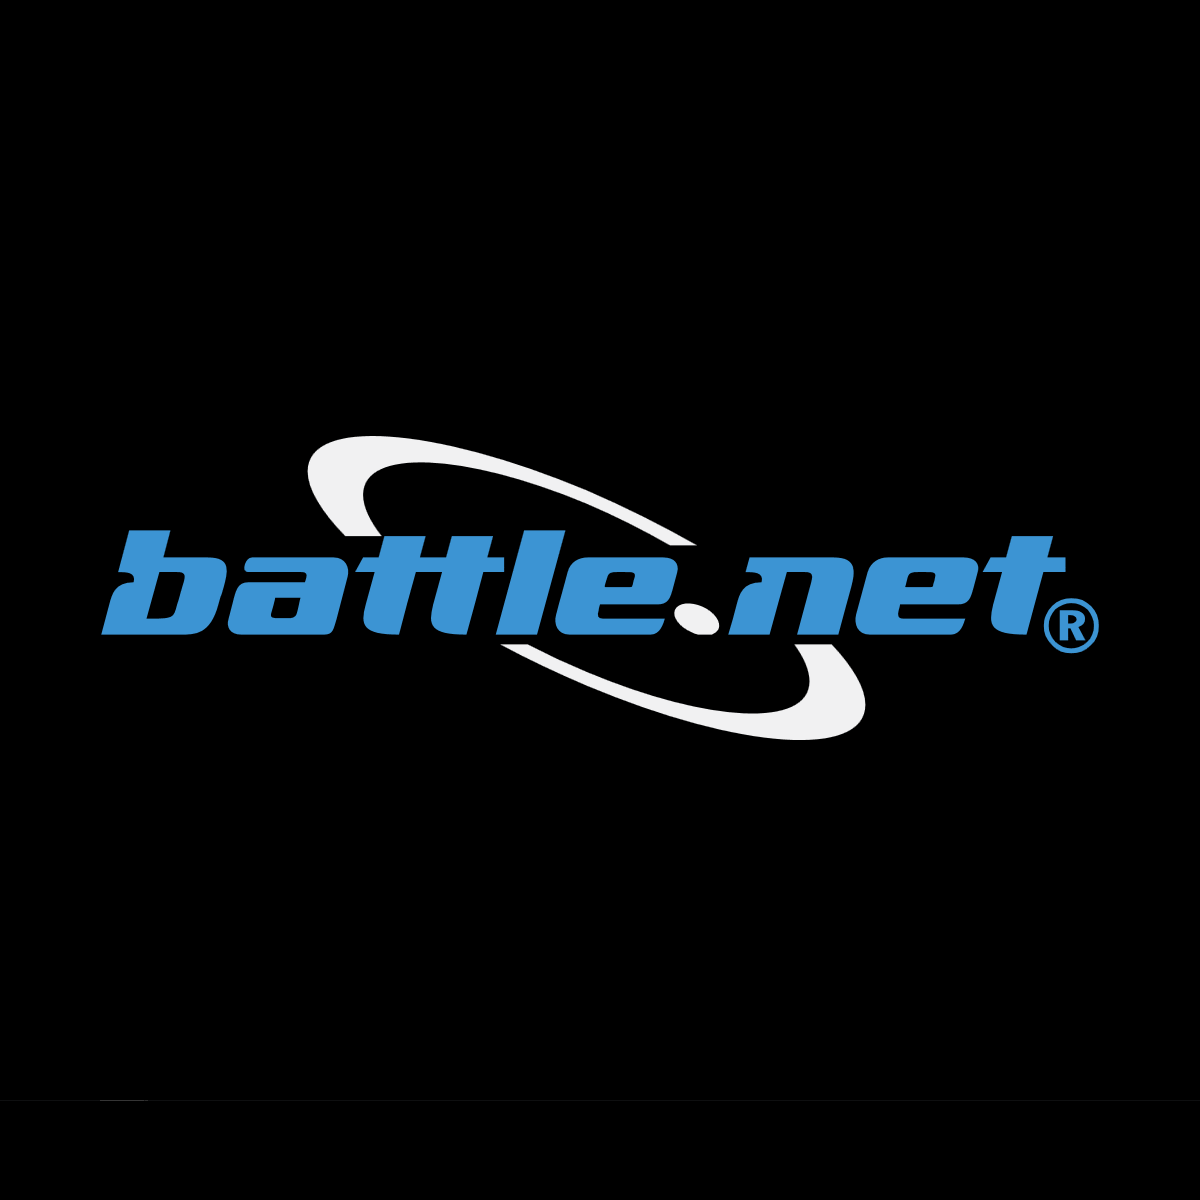 battle net launcher not opening